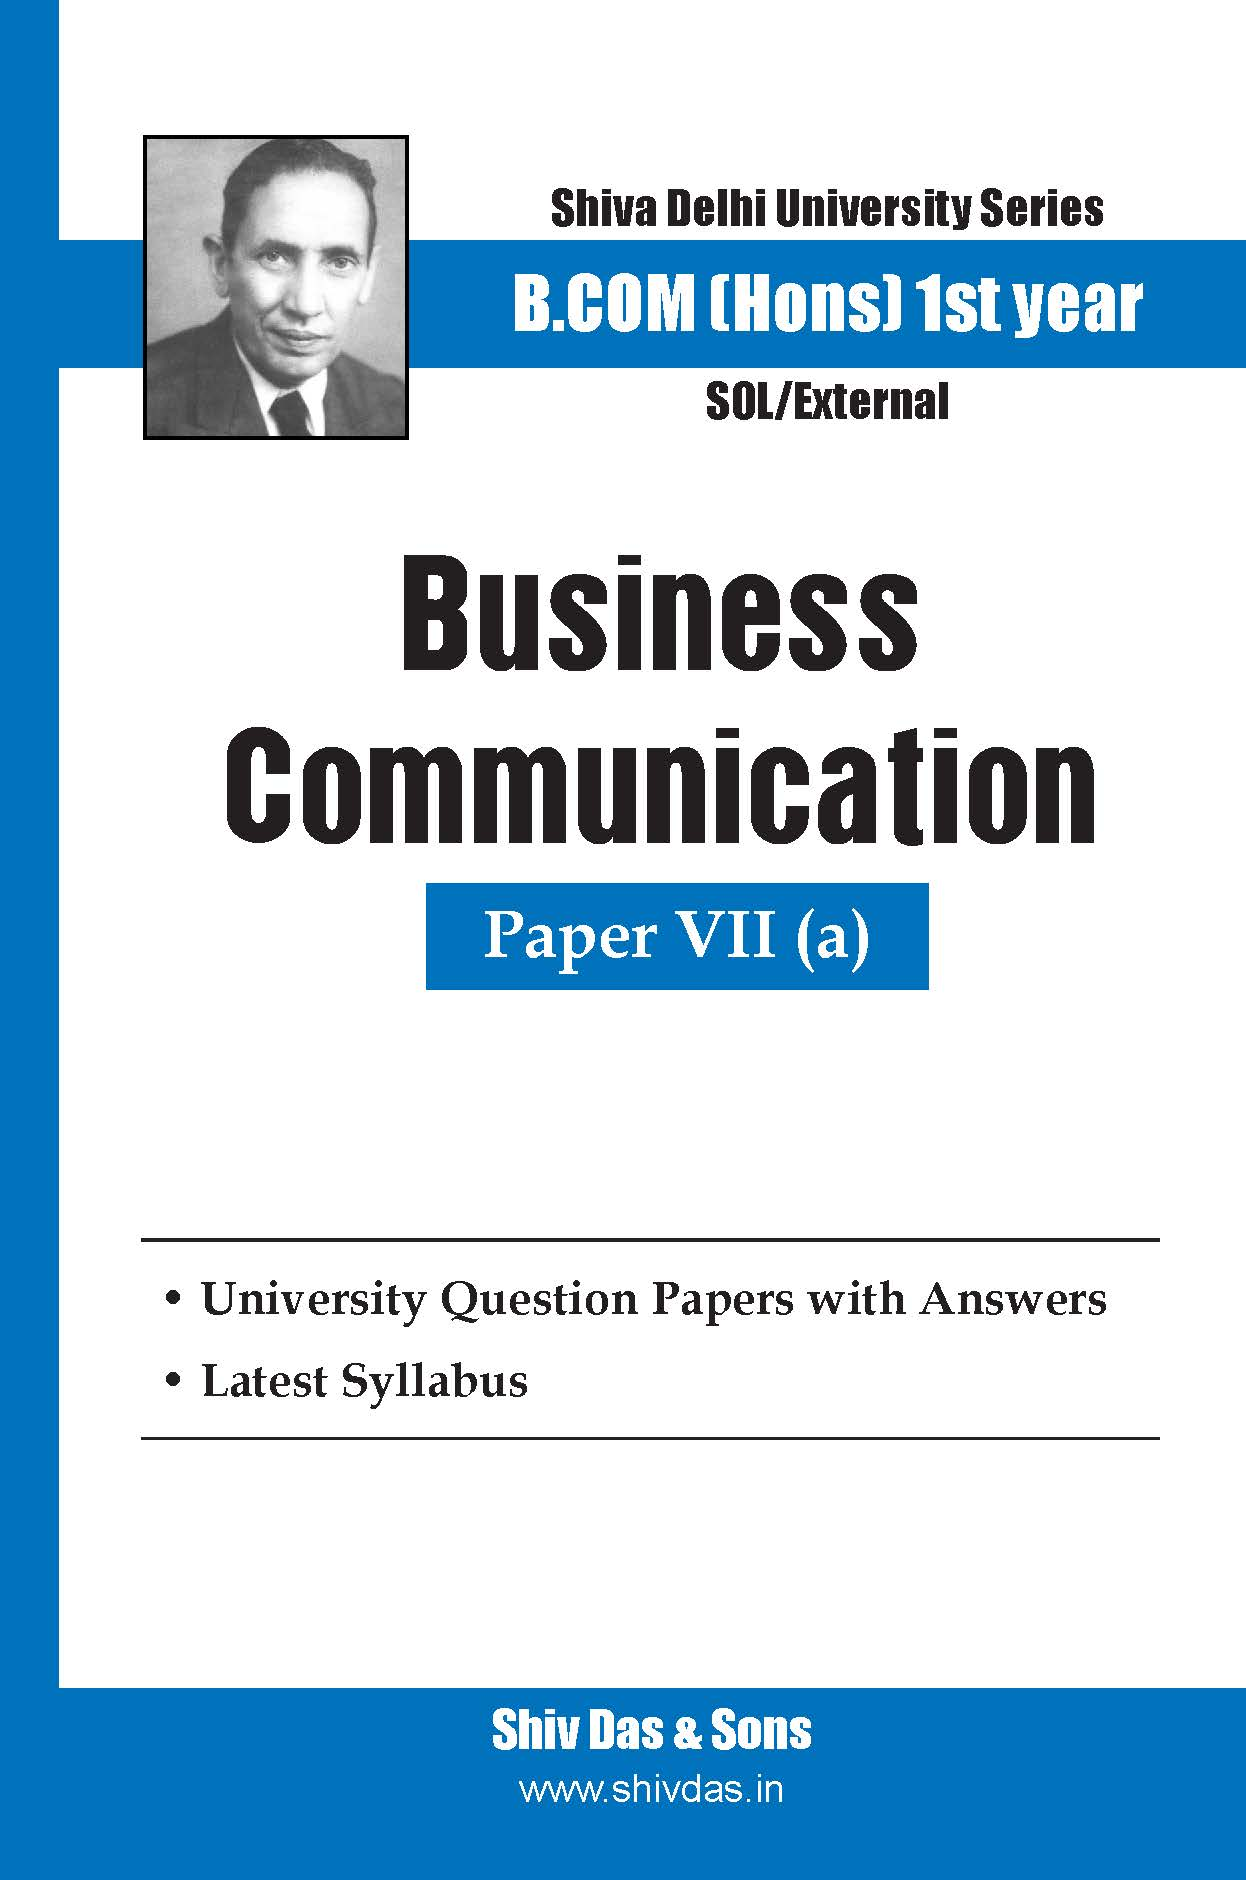 Business Communication for B.Com Hons SOL/External 1st Year